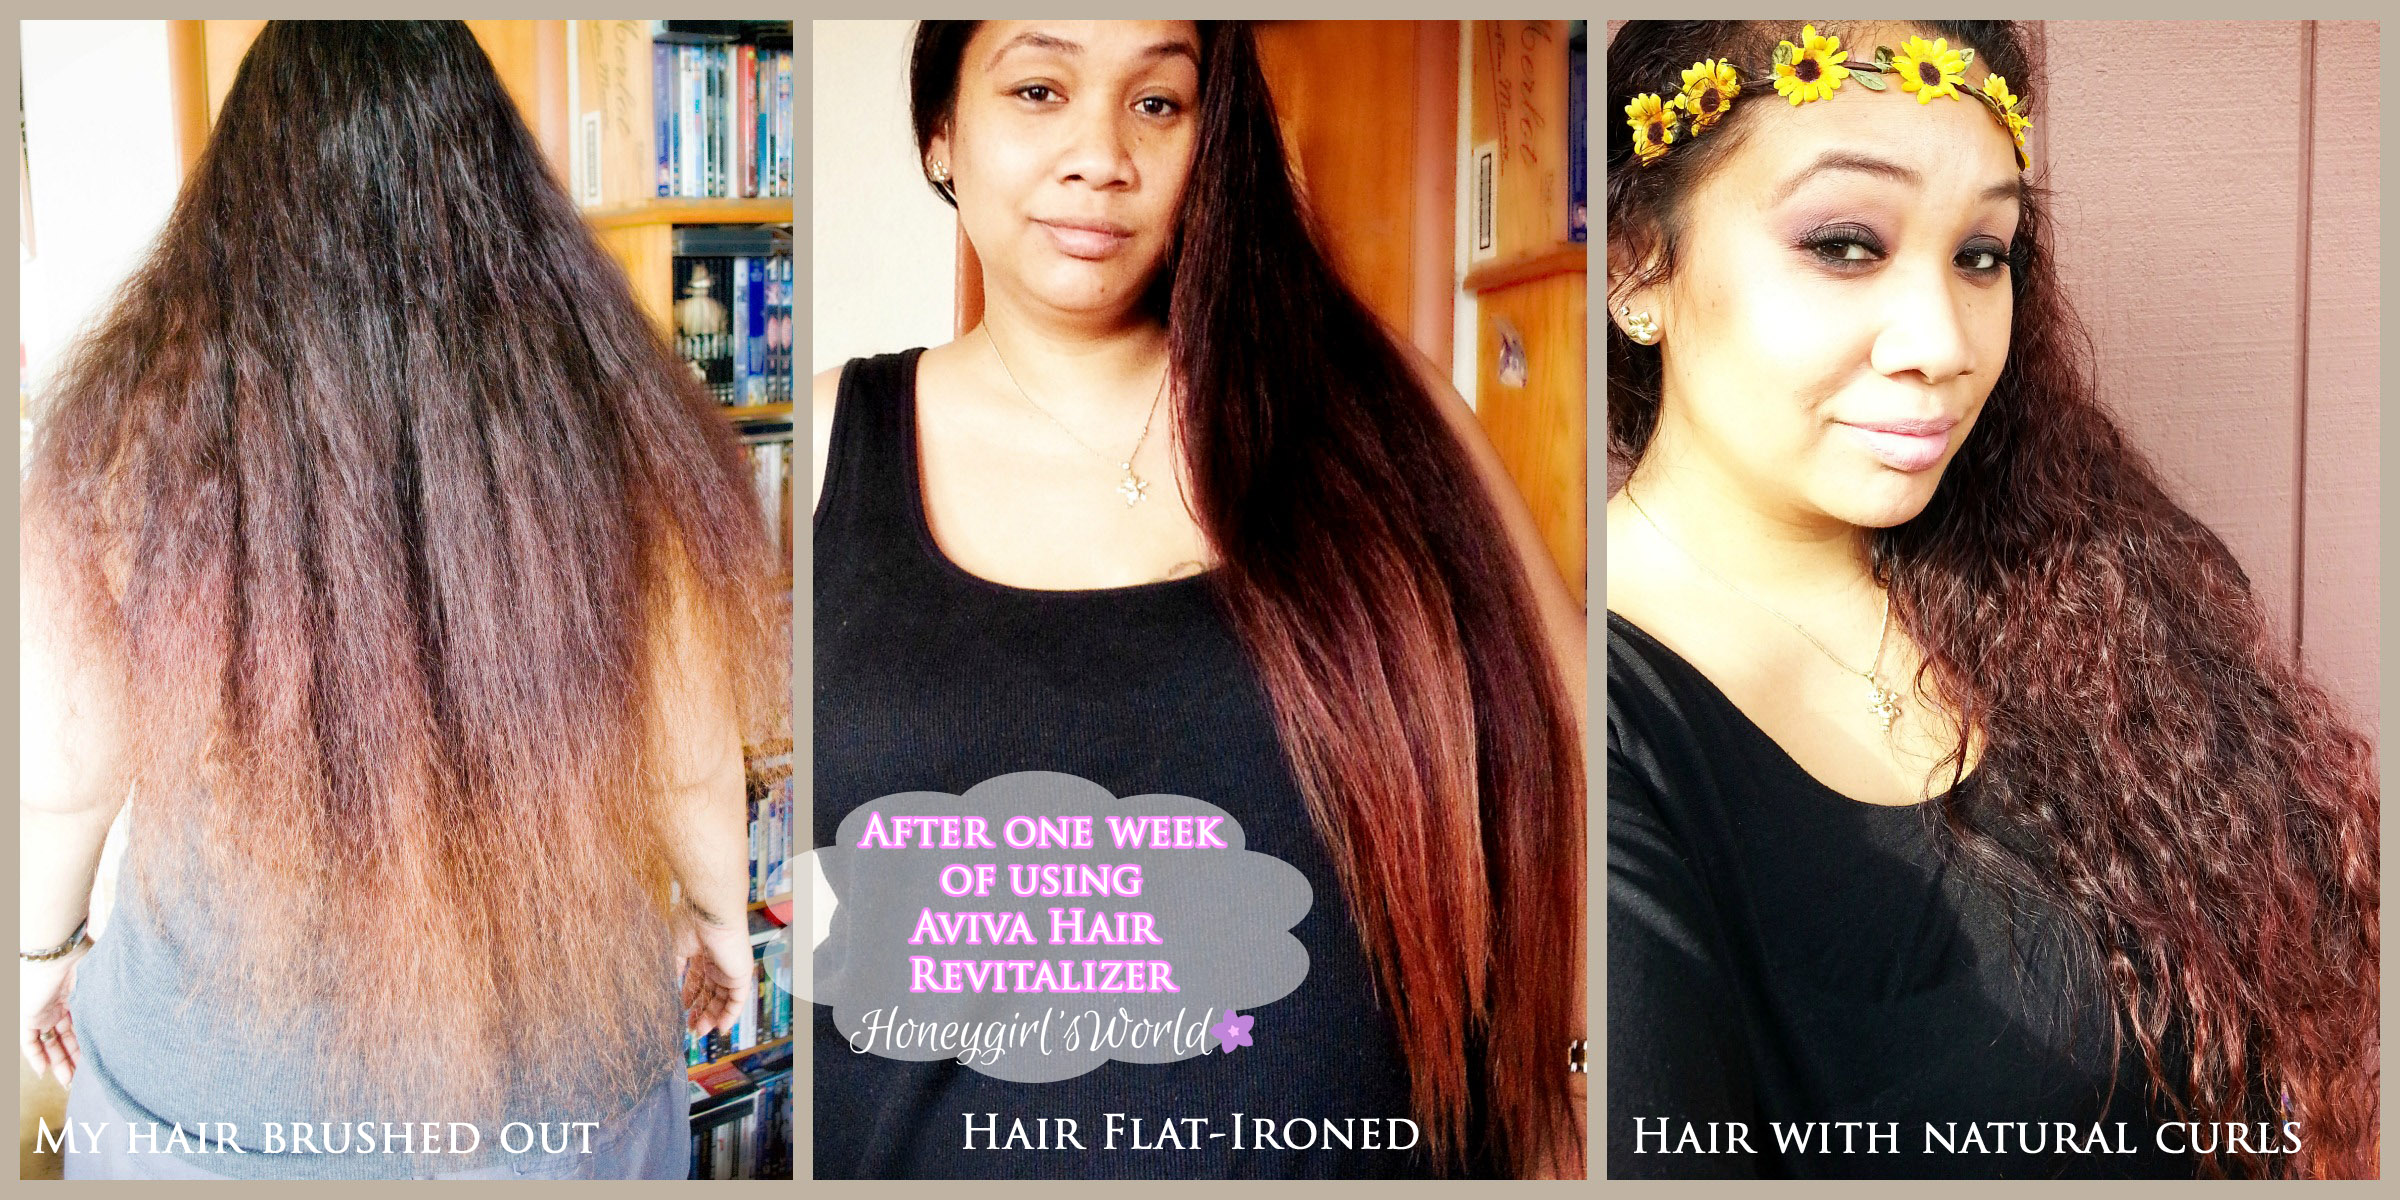 After one week of using Aviva Hair Revitalizer